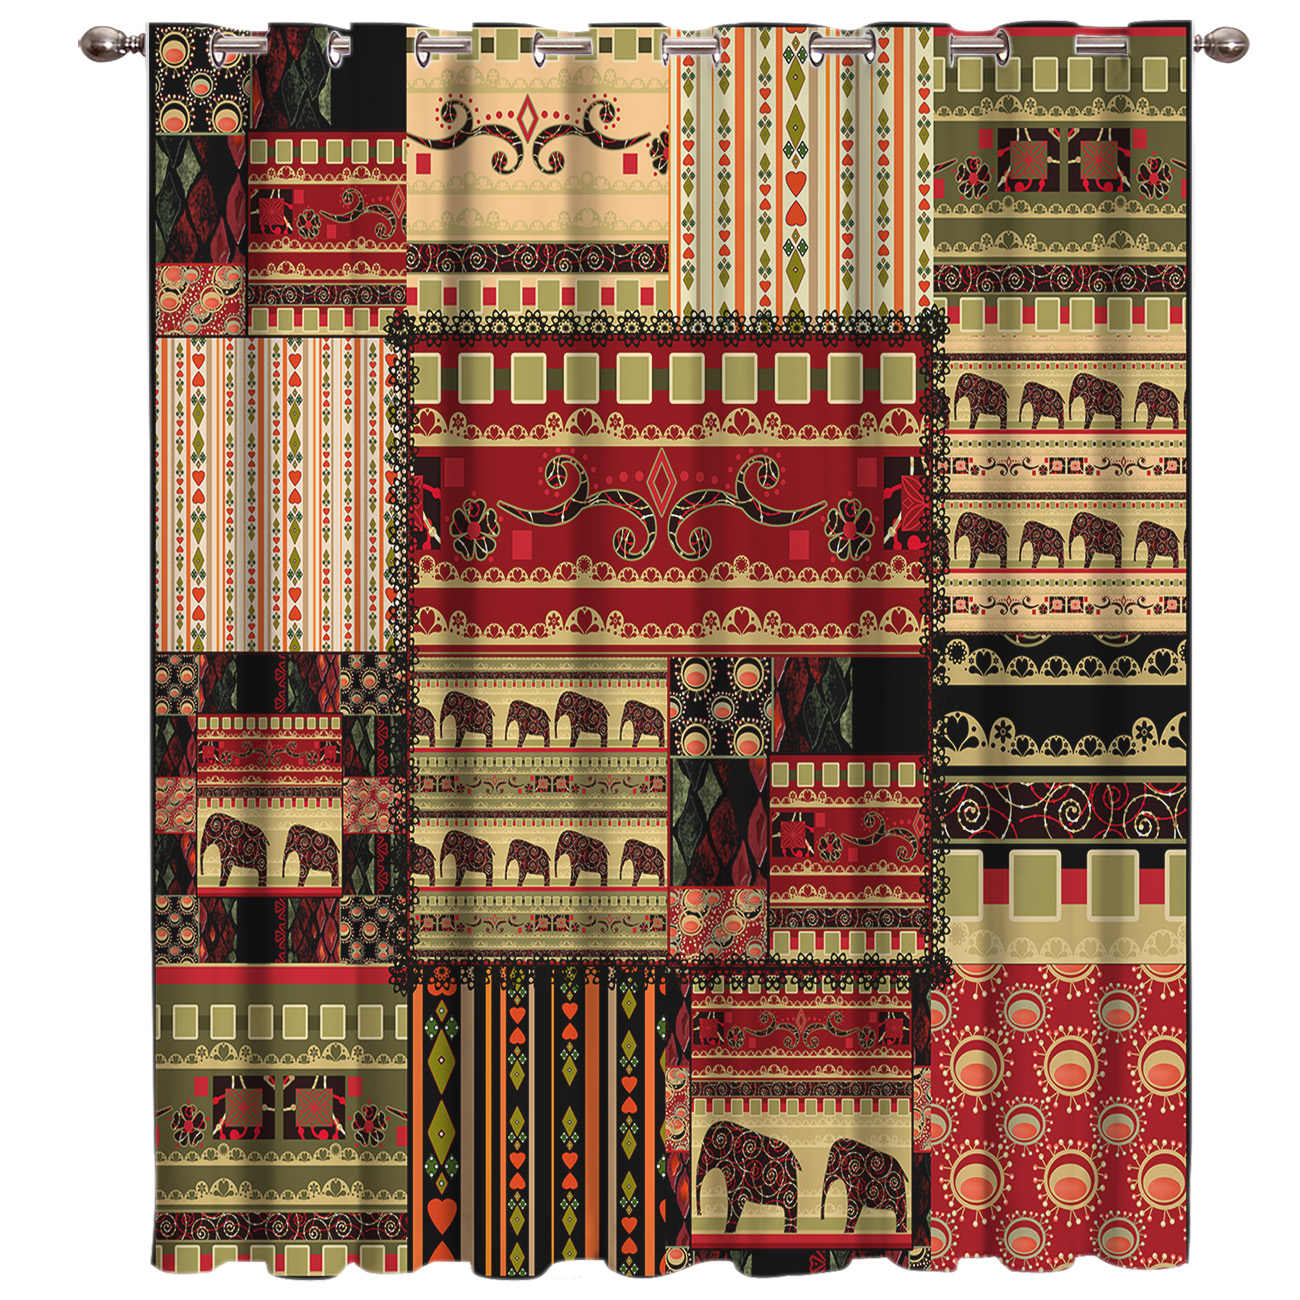 Africa Indian Elephant Window Curtains Dark Curtain Lights Living Room Curtains Outdoor Indoor Fabric Drapes Swag Curtain Panels